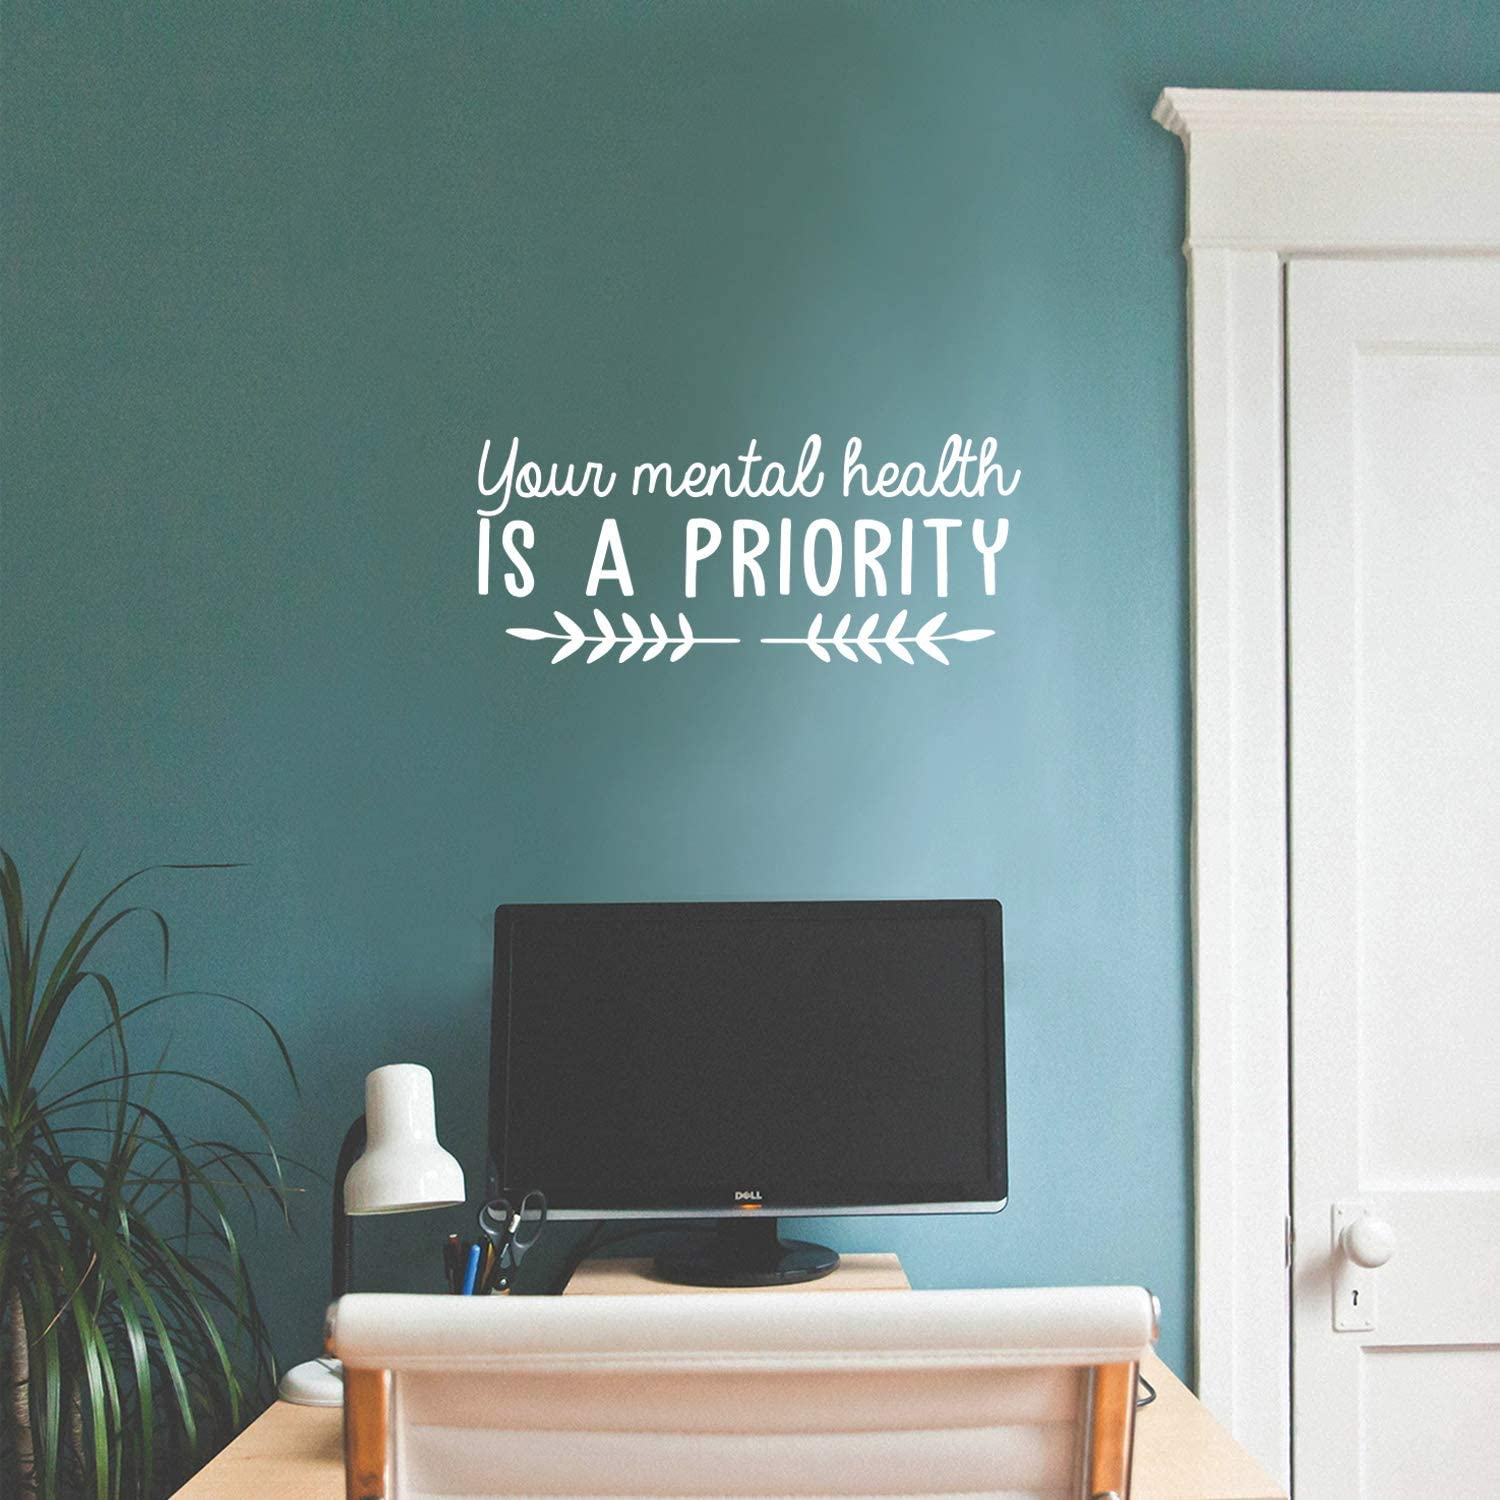 Vinyl Wall Art Decal - Your Mental Health is A Priority - 10.5